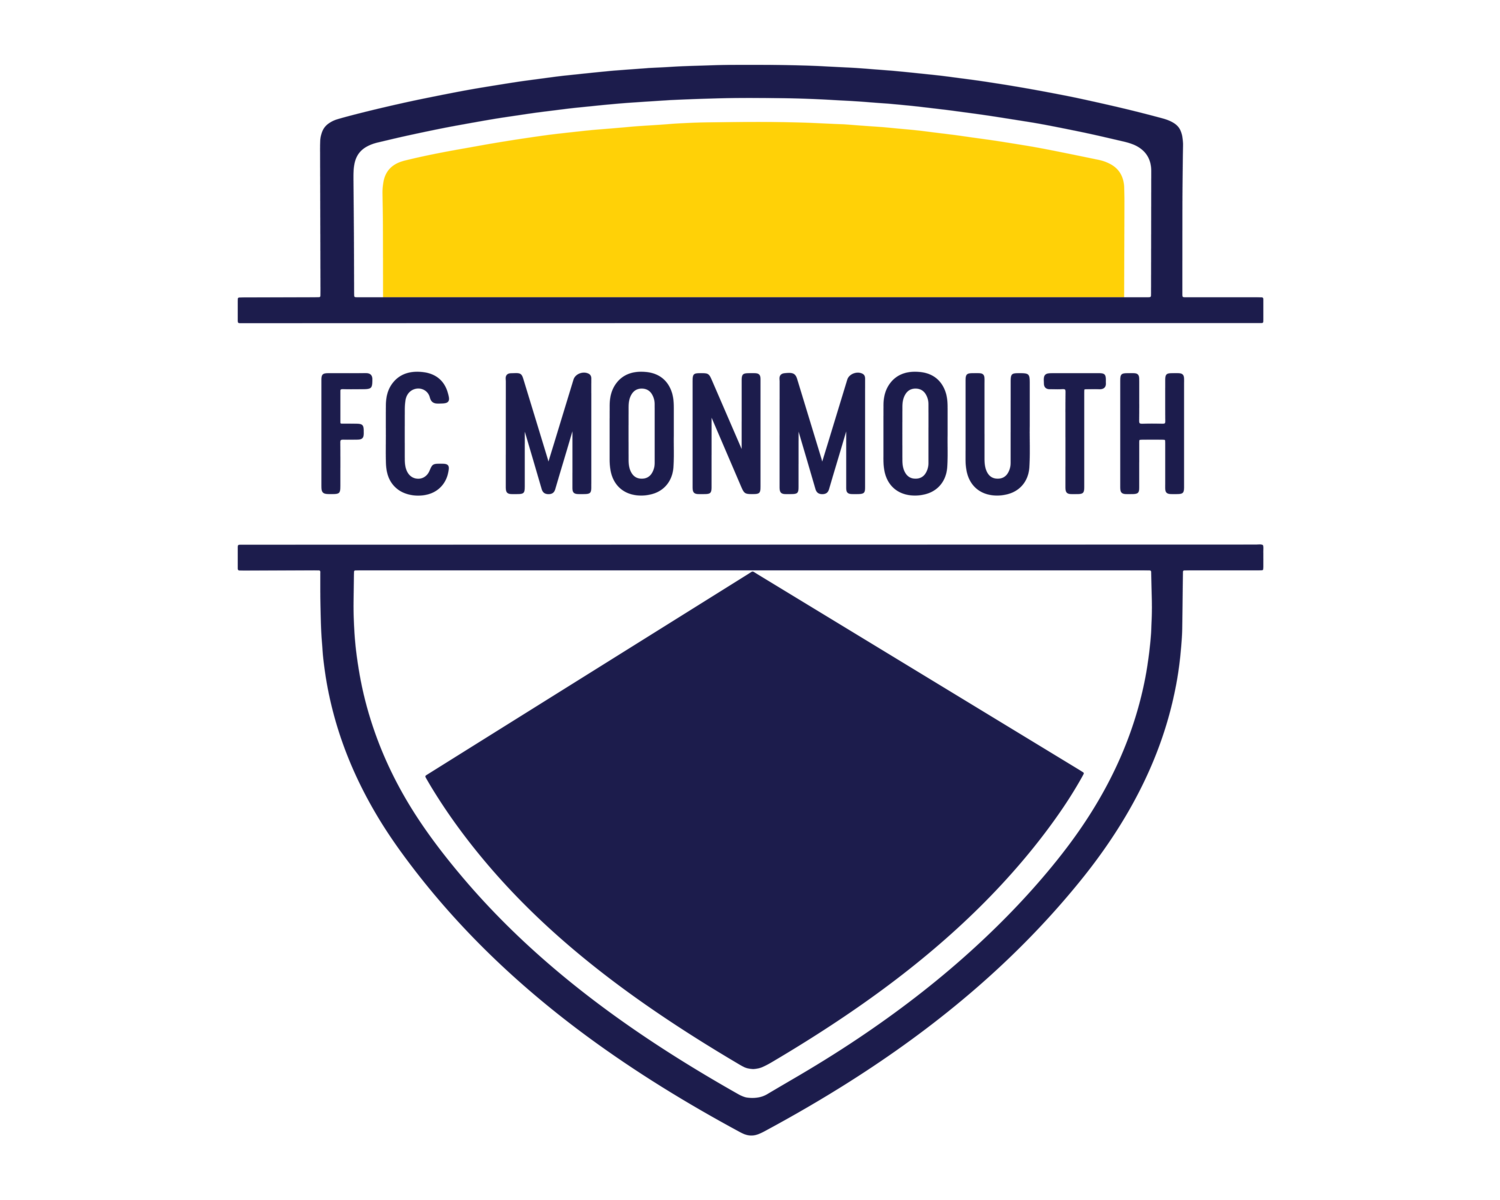 FC Monmouth